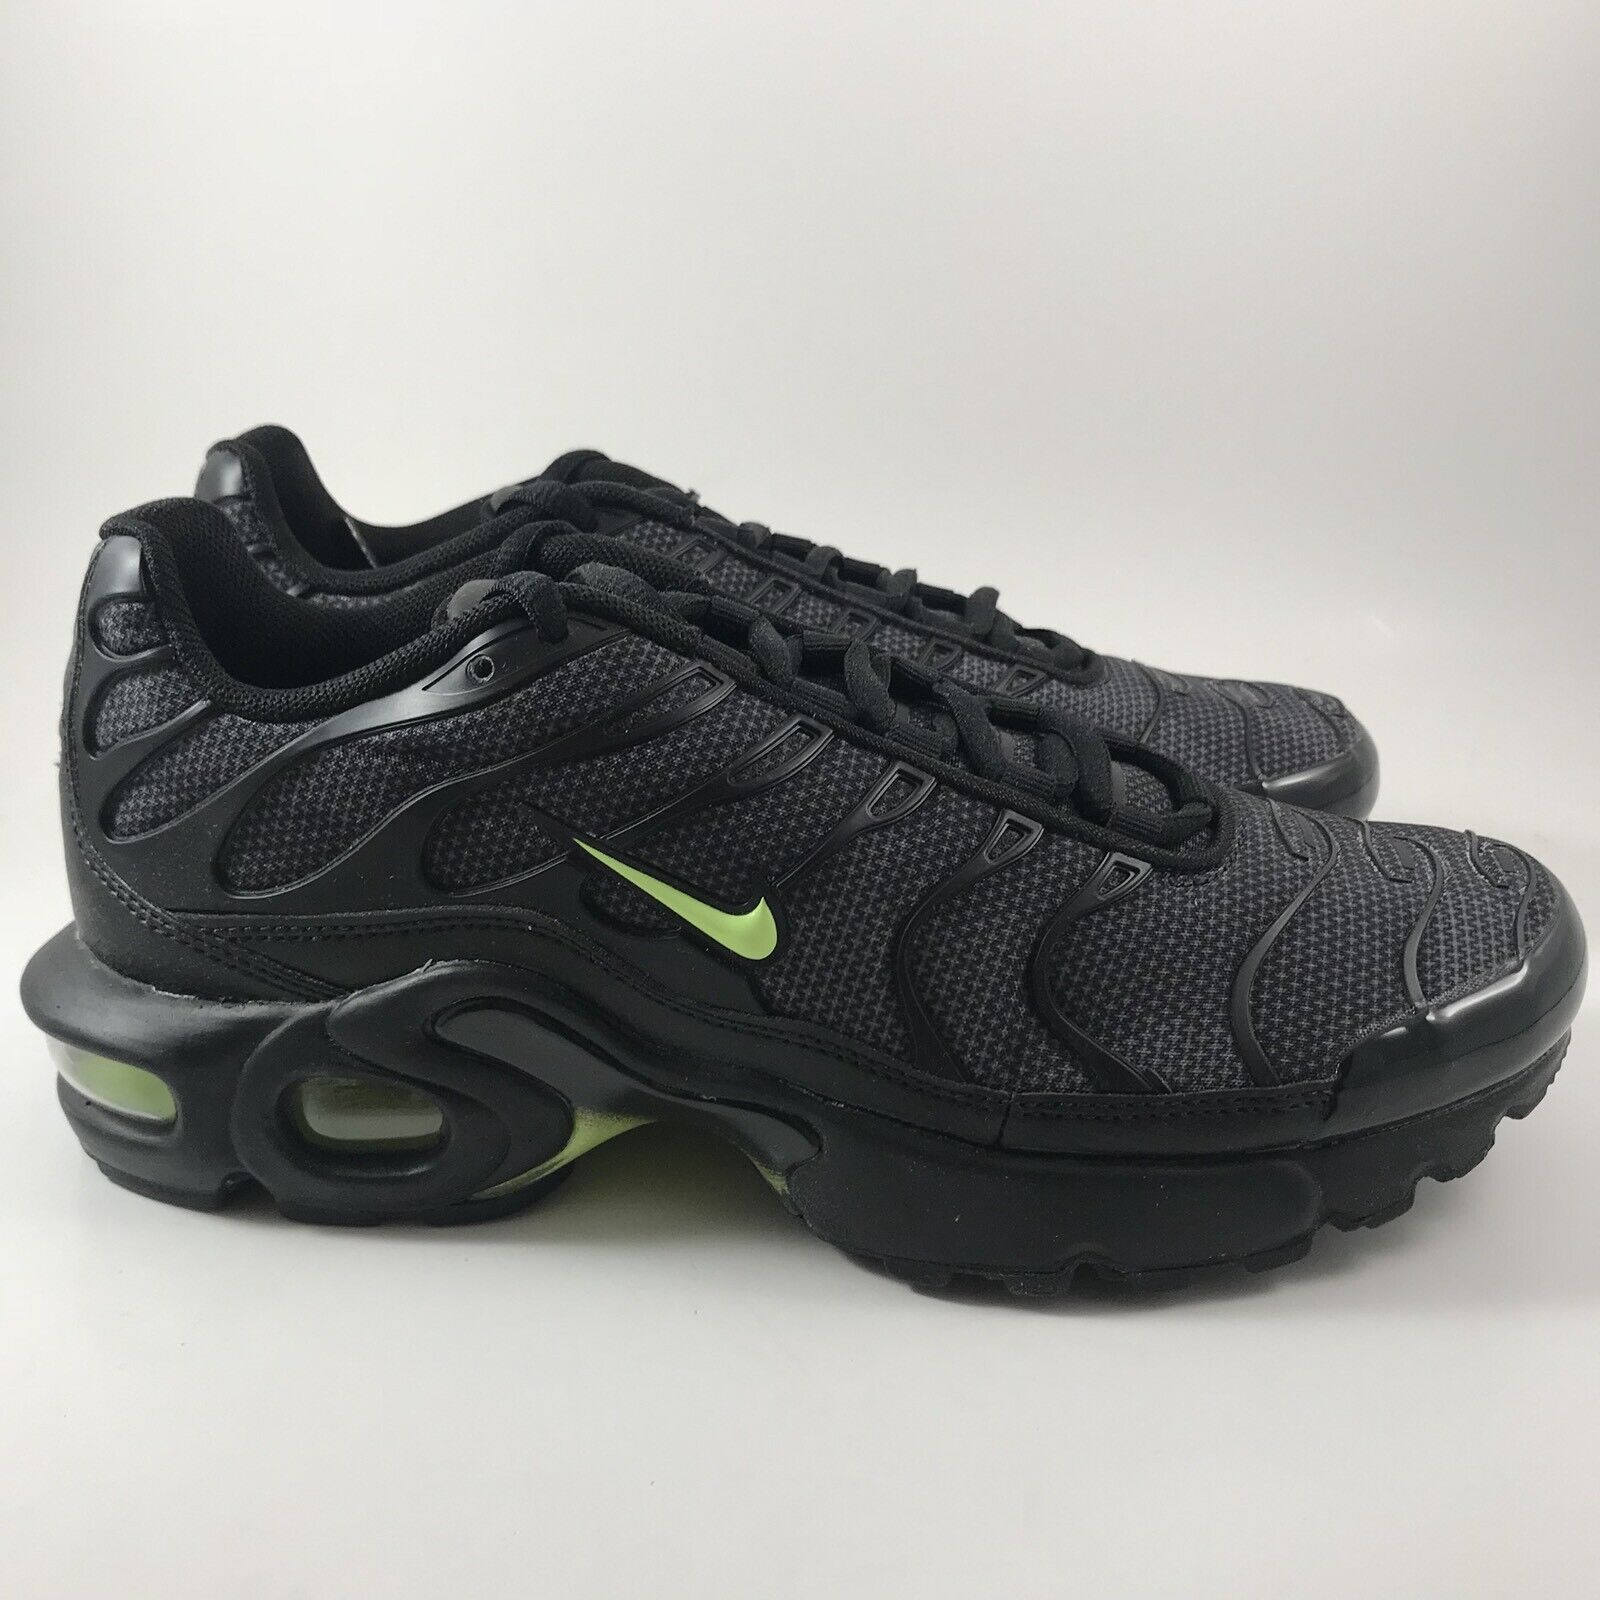 Nike Air Max Plus TN Tuned 1 GS Neon Black Volt Youth Shoes Size ...